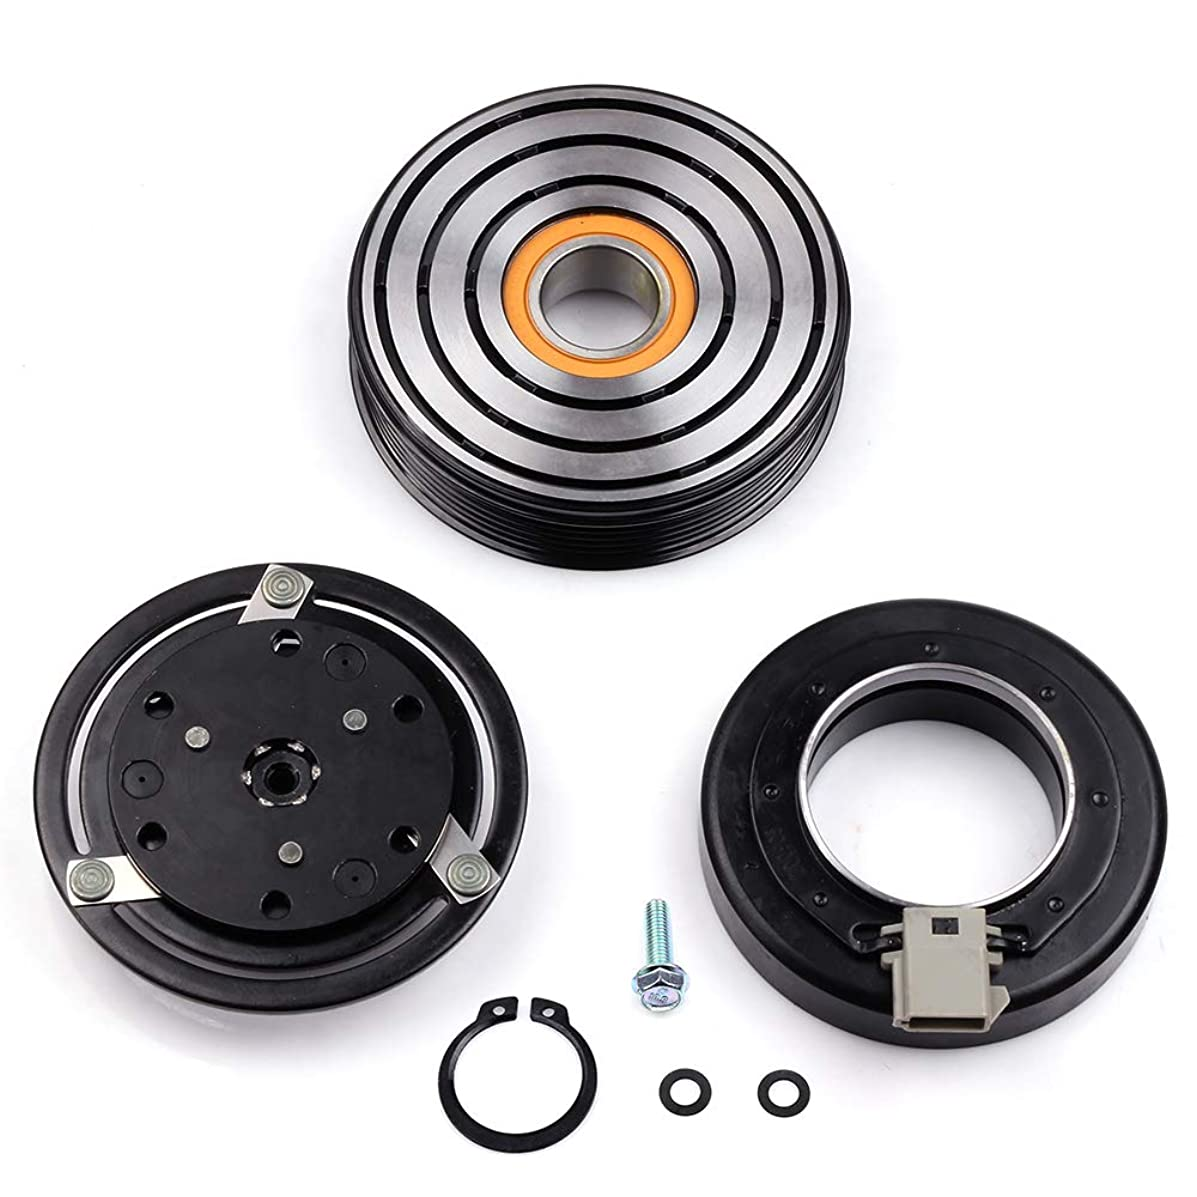 SCITOO Compatible with AC Compressor Clutches Repair Set CO 101410C Auto Compressor Clutch Assembly Kit for Mercury Sable Ford Bronco F-250 F350 F53 Mustang Taurus 1993-2004